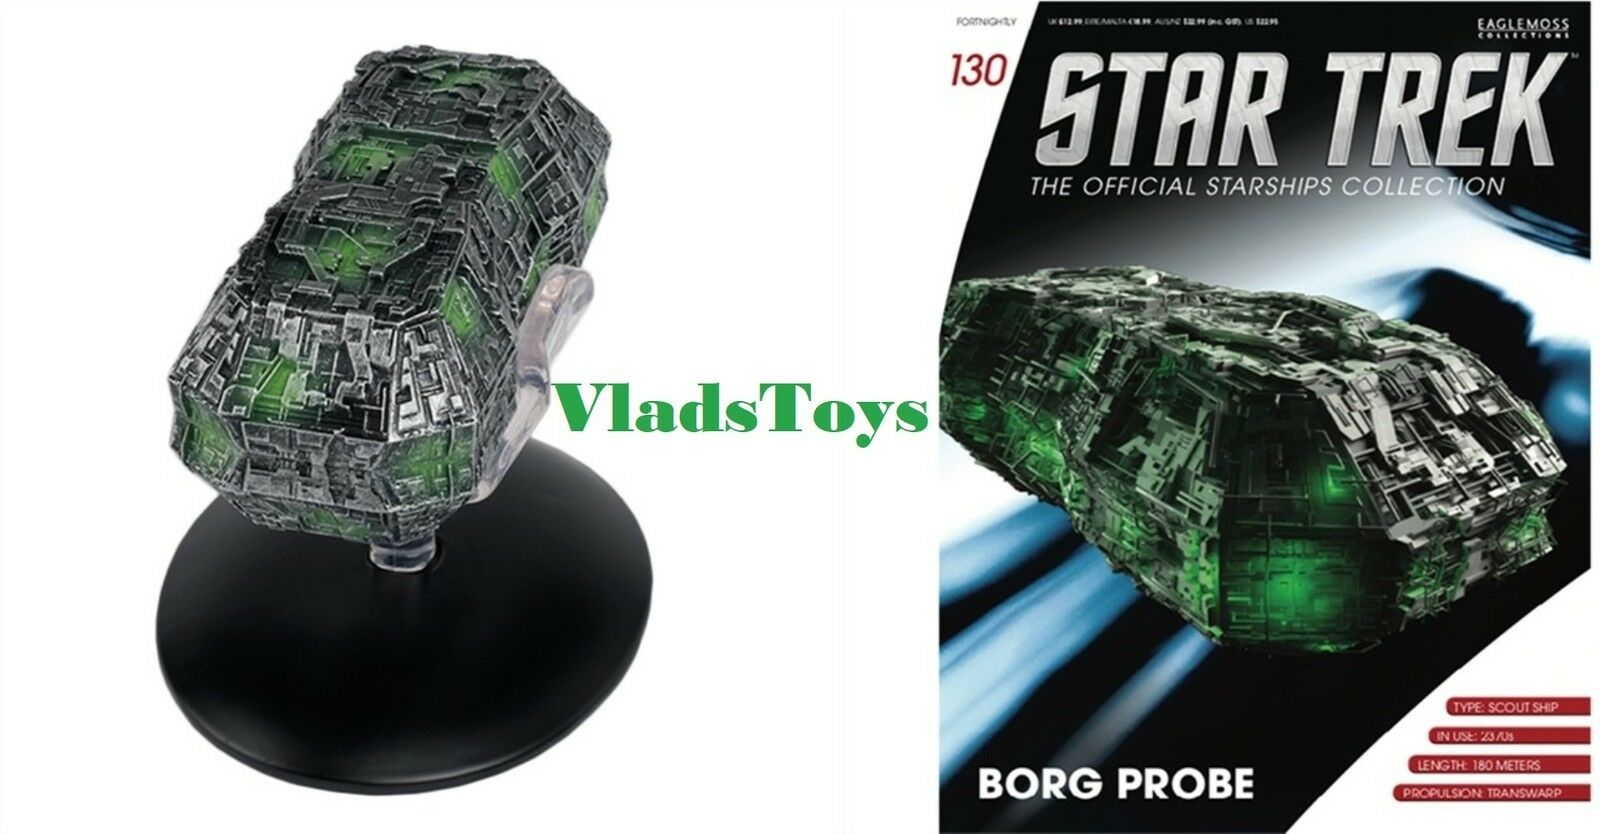 Borg Probe Eaglemoss Star Trek Issue w Magazine